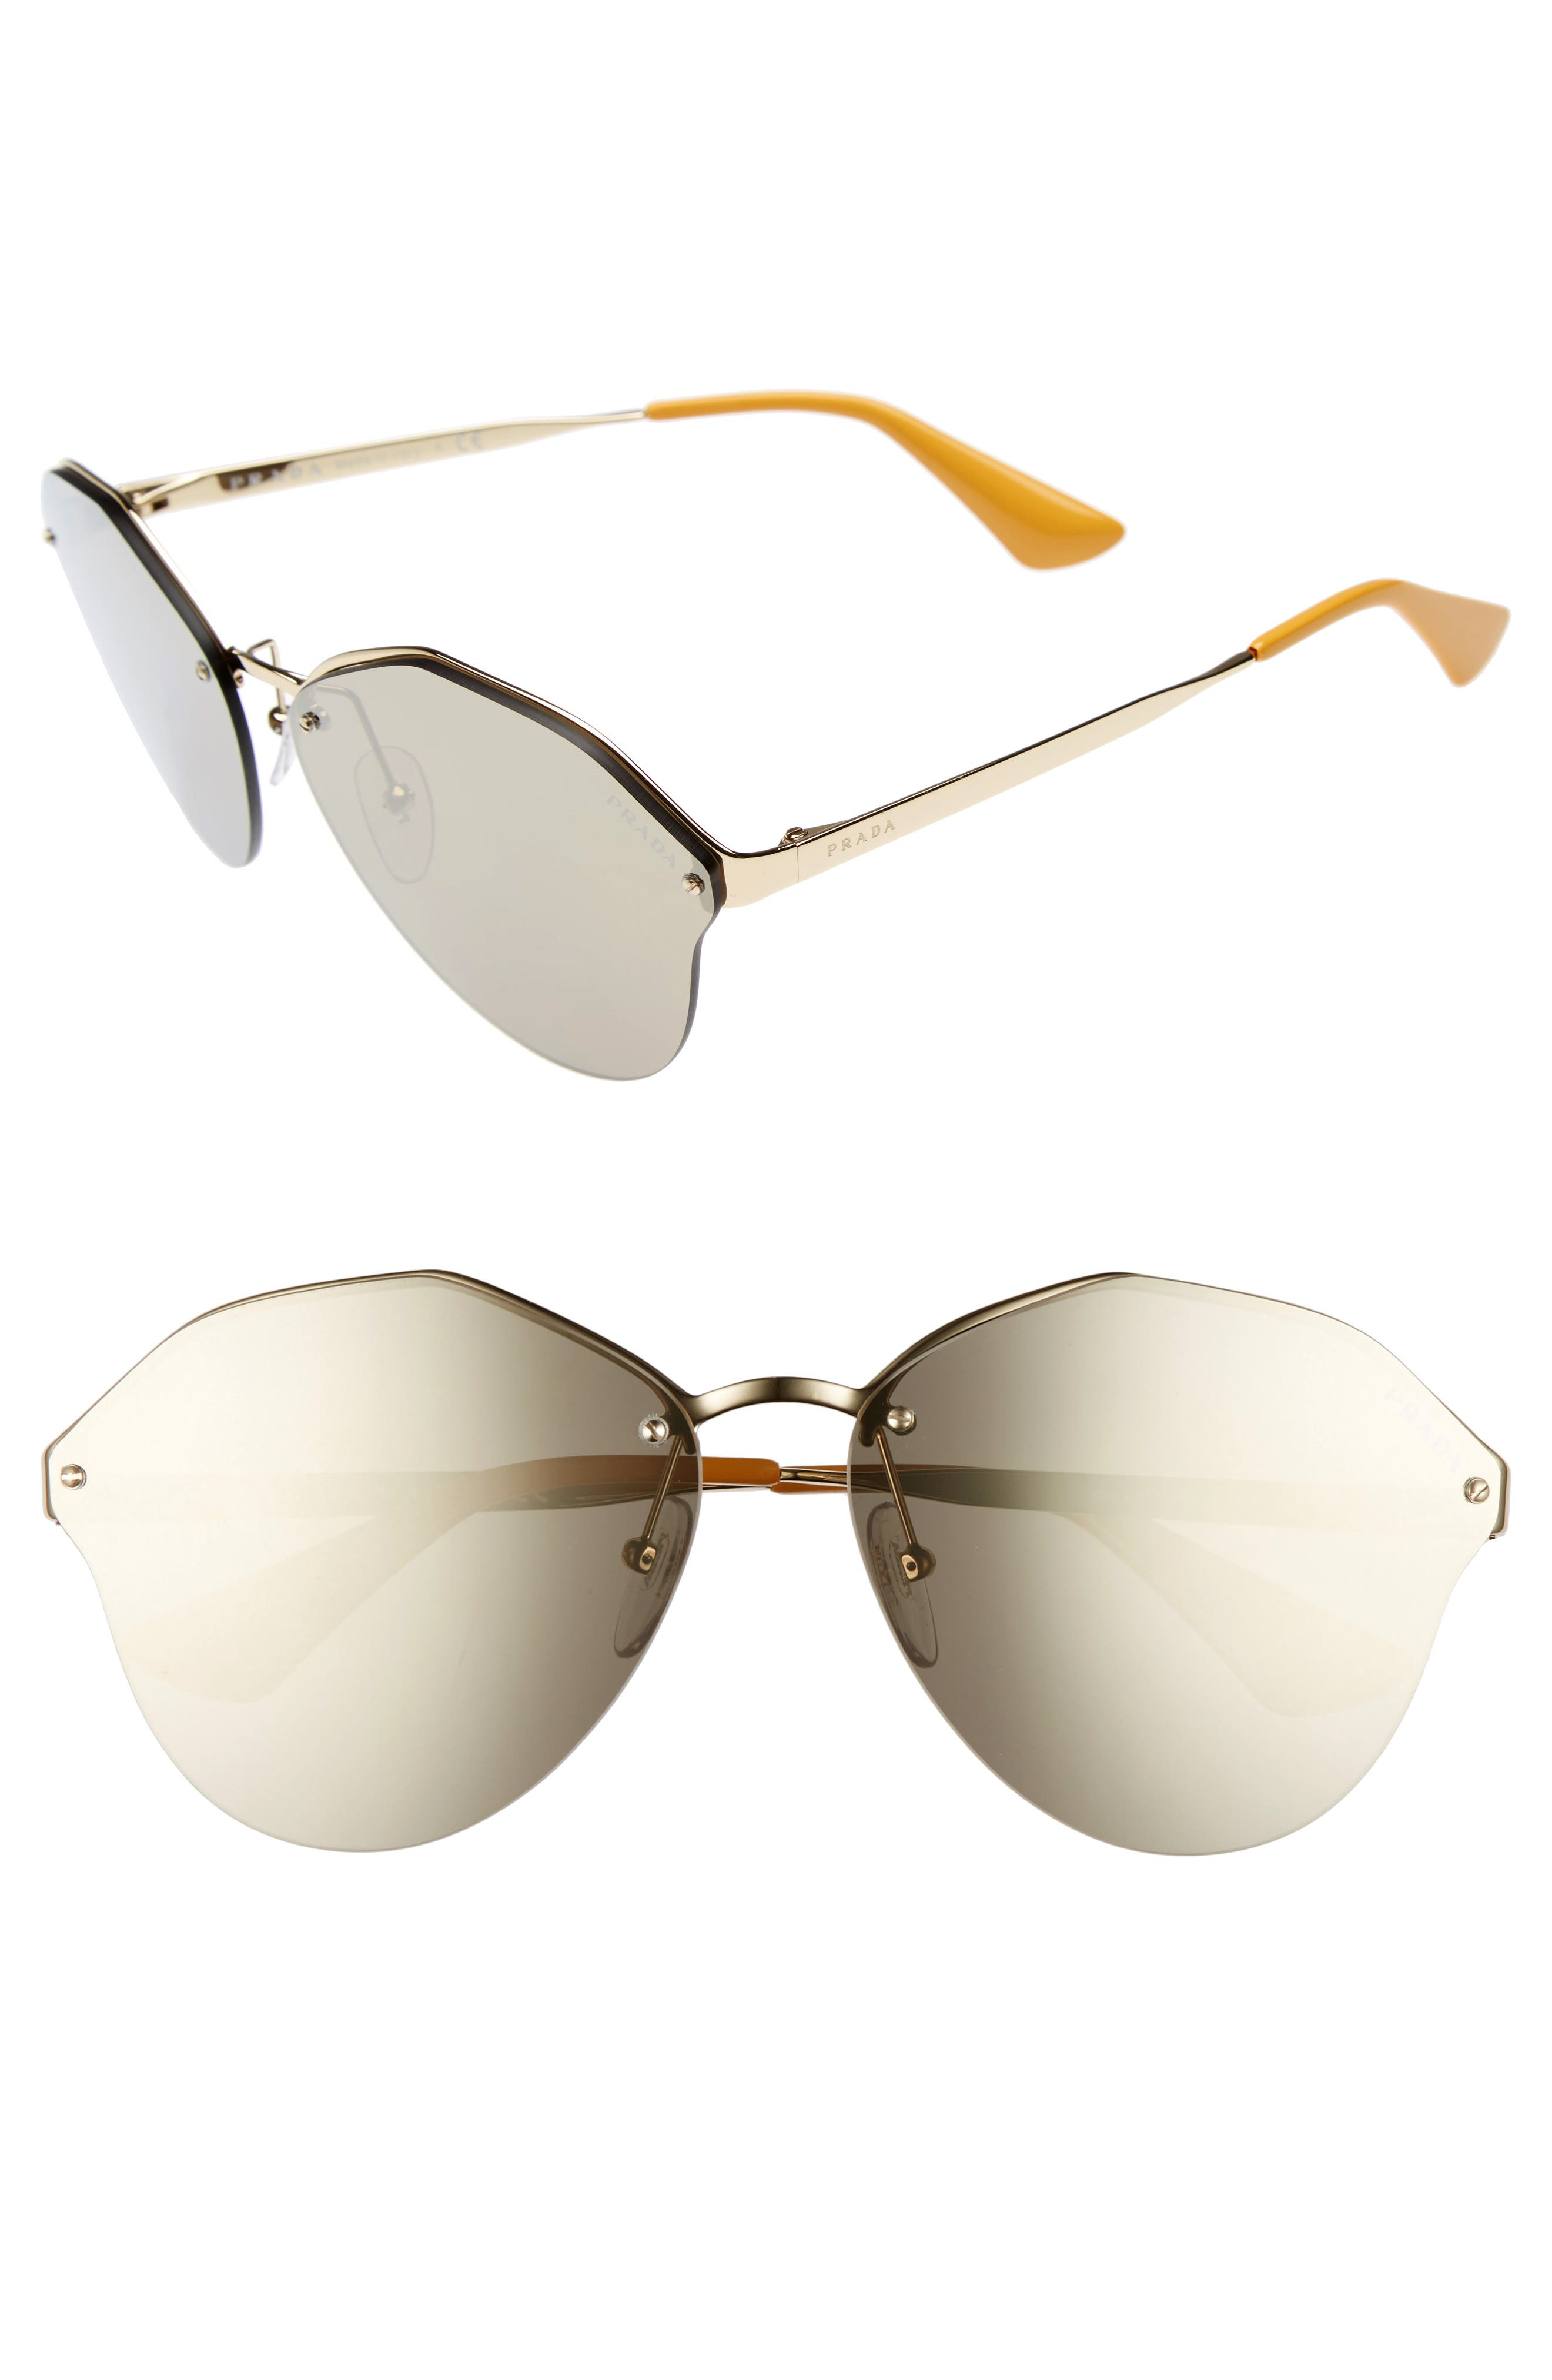 Main Image - Prada 66mm Oversize Rimless Sunglasses